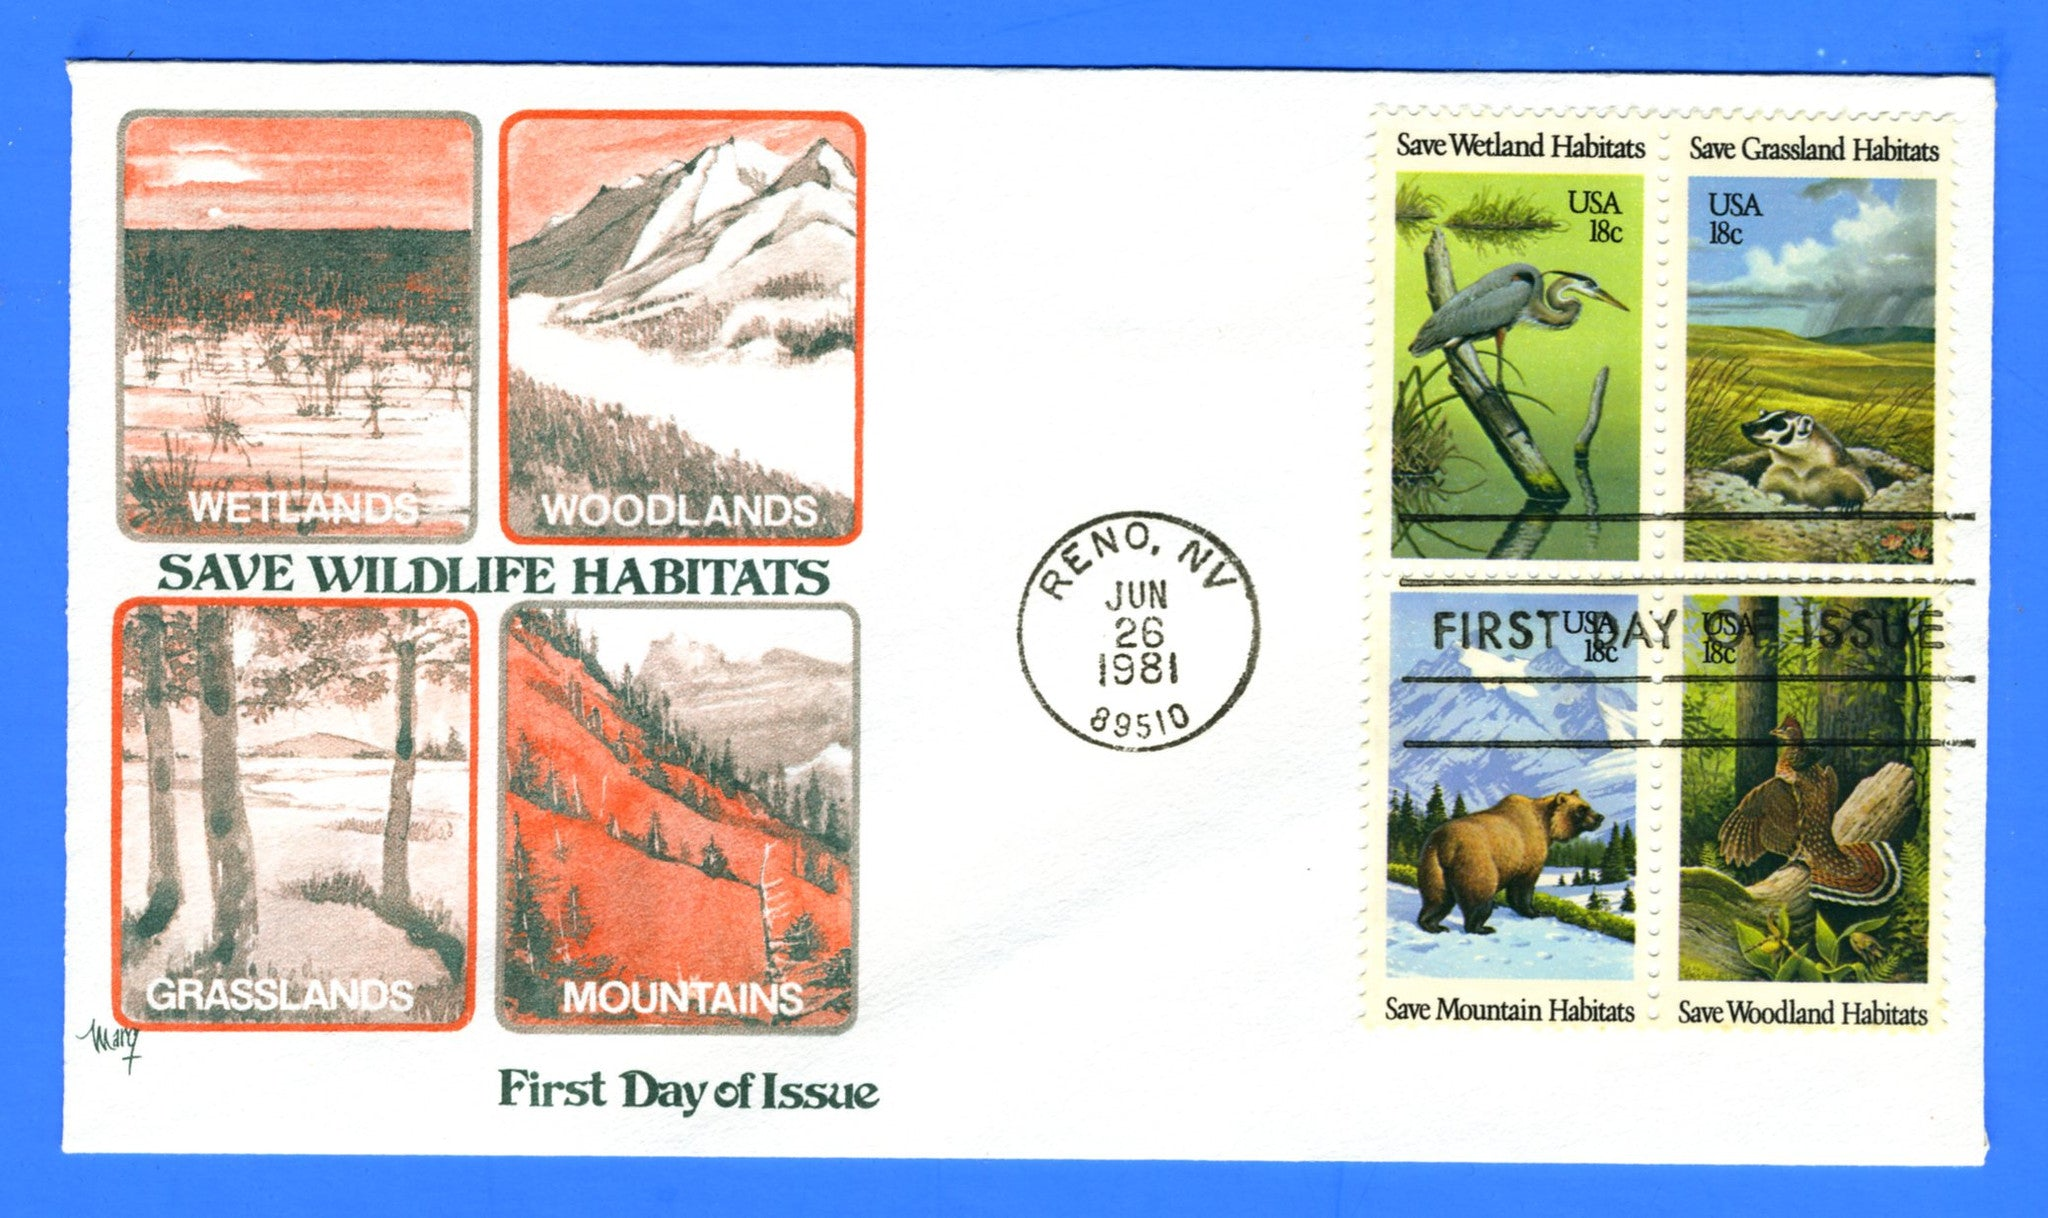 Scott 1924a 18c Save Wetland Habitats First Day Cover by Marg